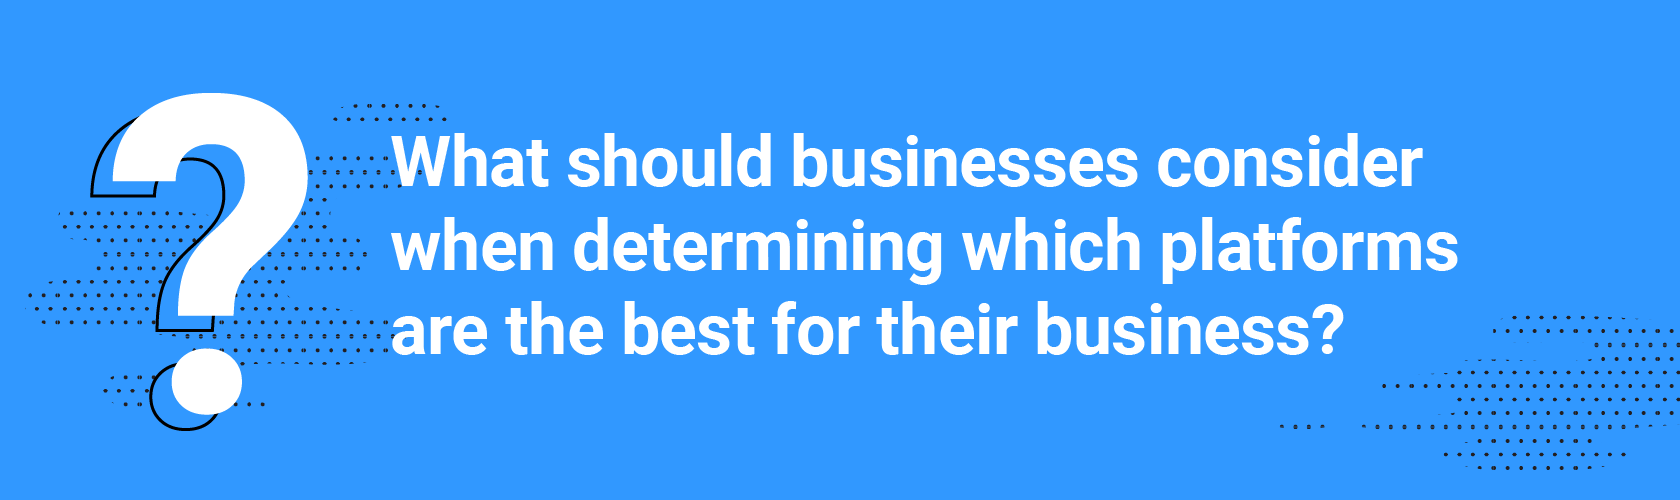 What should businesses consider when determining which platforms are the best for theirbusiness?